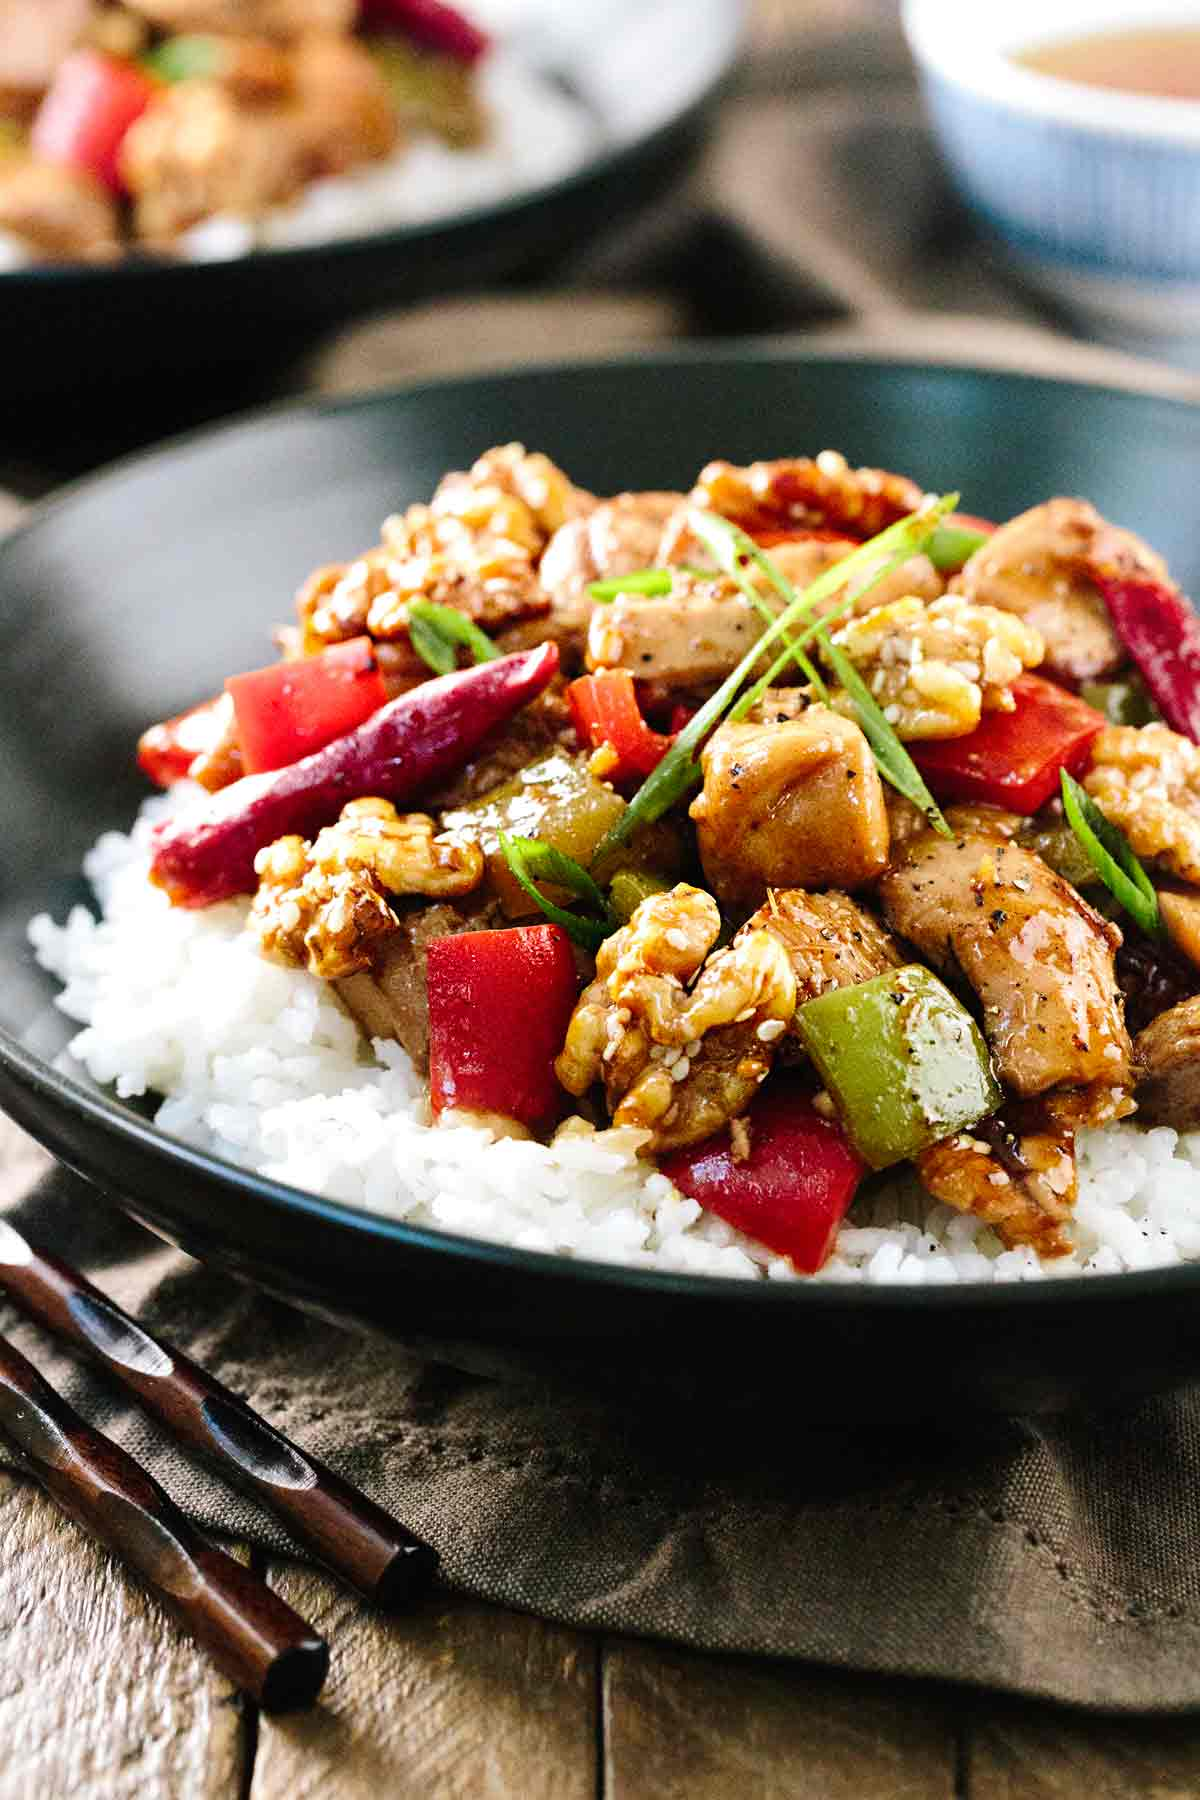 Black plate of Kung Pao Chicken over a bed of white rice